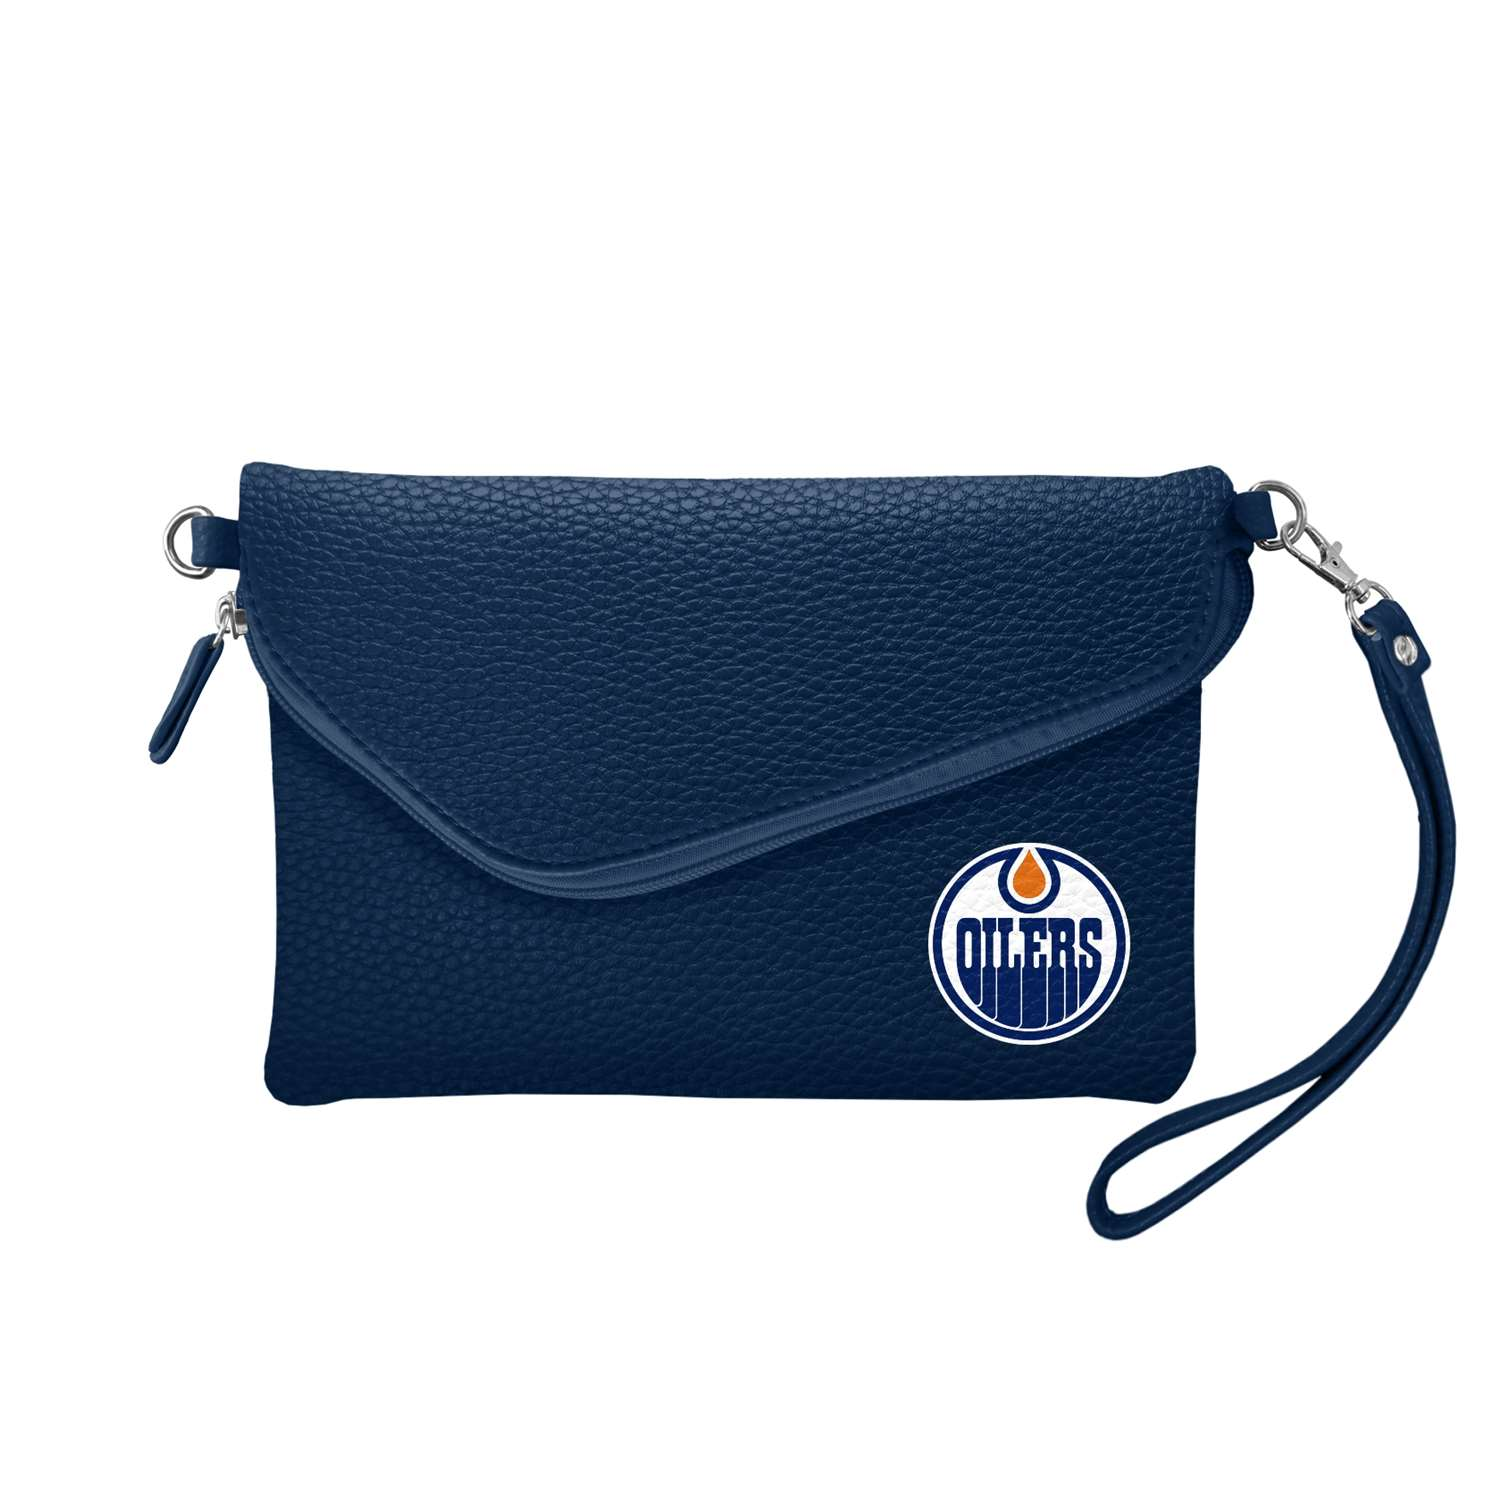 Nhl Hockey Edmonton Oilers Bath - 500432-oilr-navy - Edmonton Oilers Fold Over Crossbody Pebble 500432-OILR-NAVY